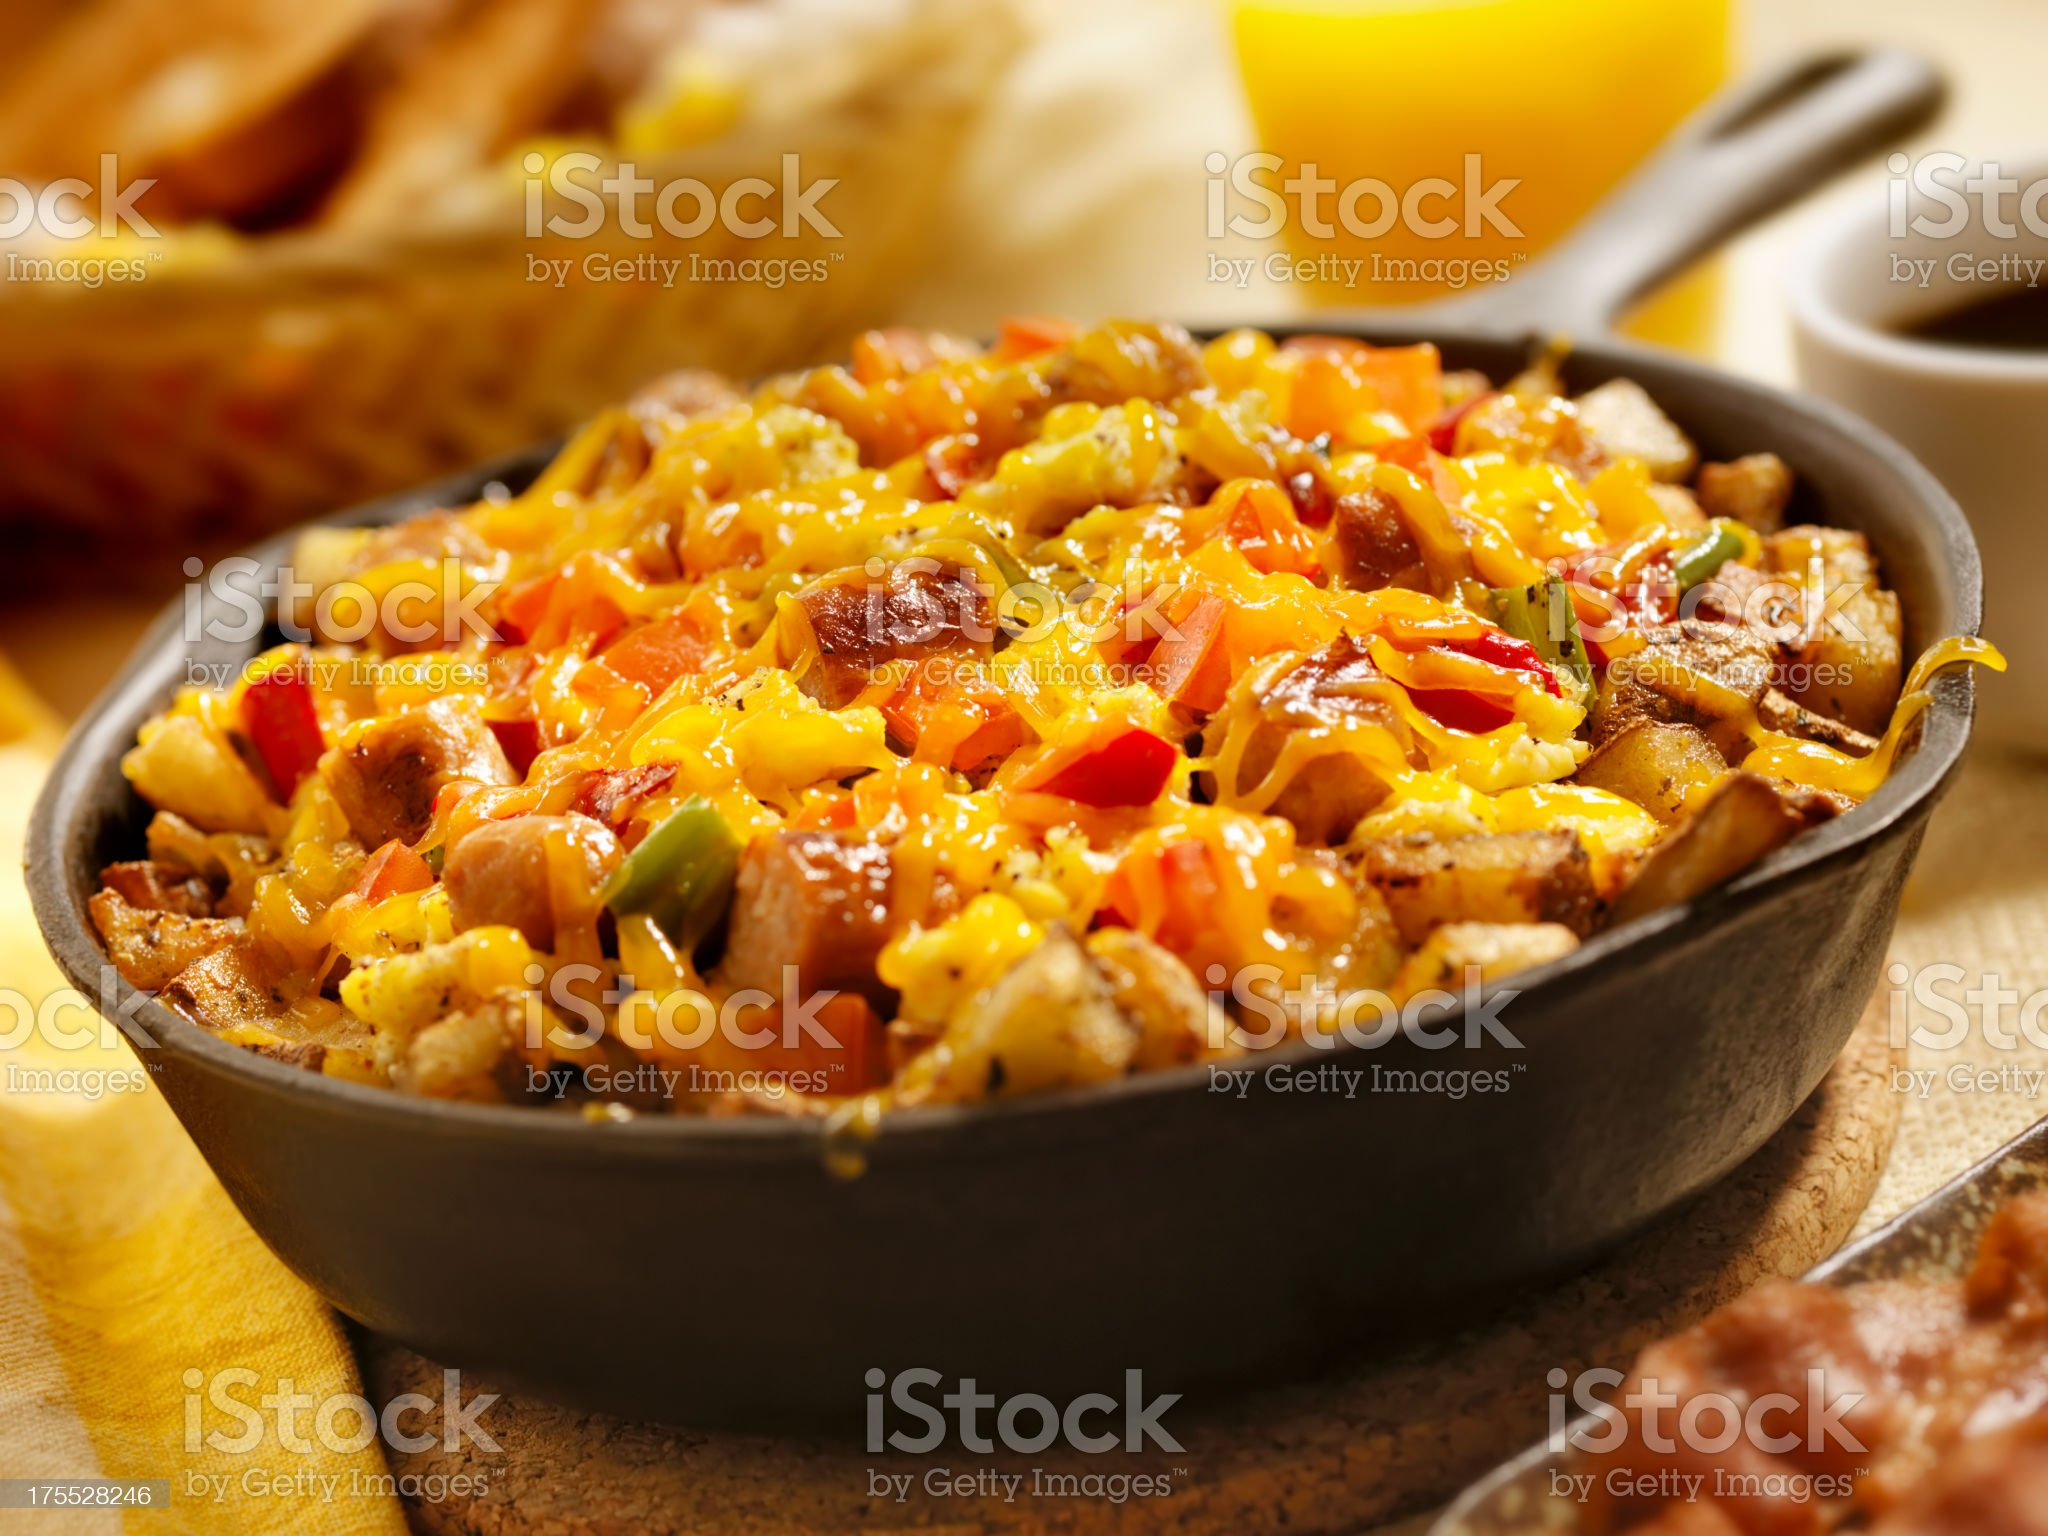 Sausage Pan Scrambler with Cheddar Cheese royalty-free stock photo